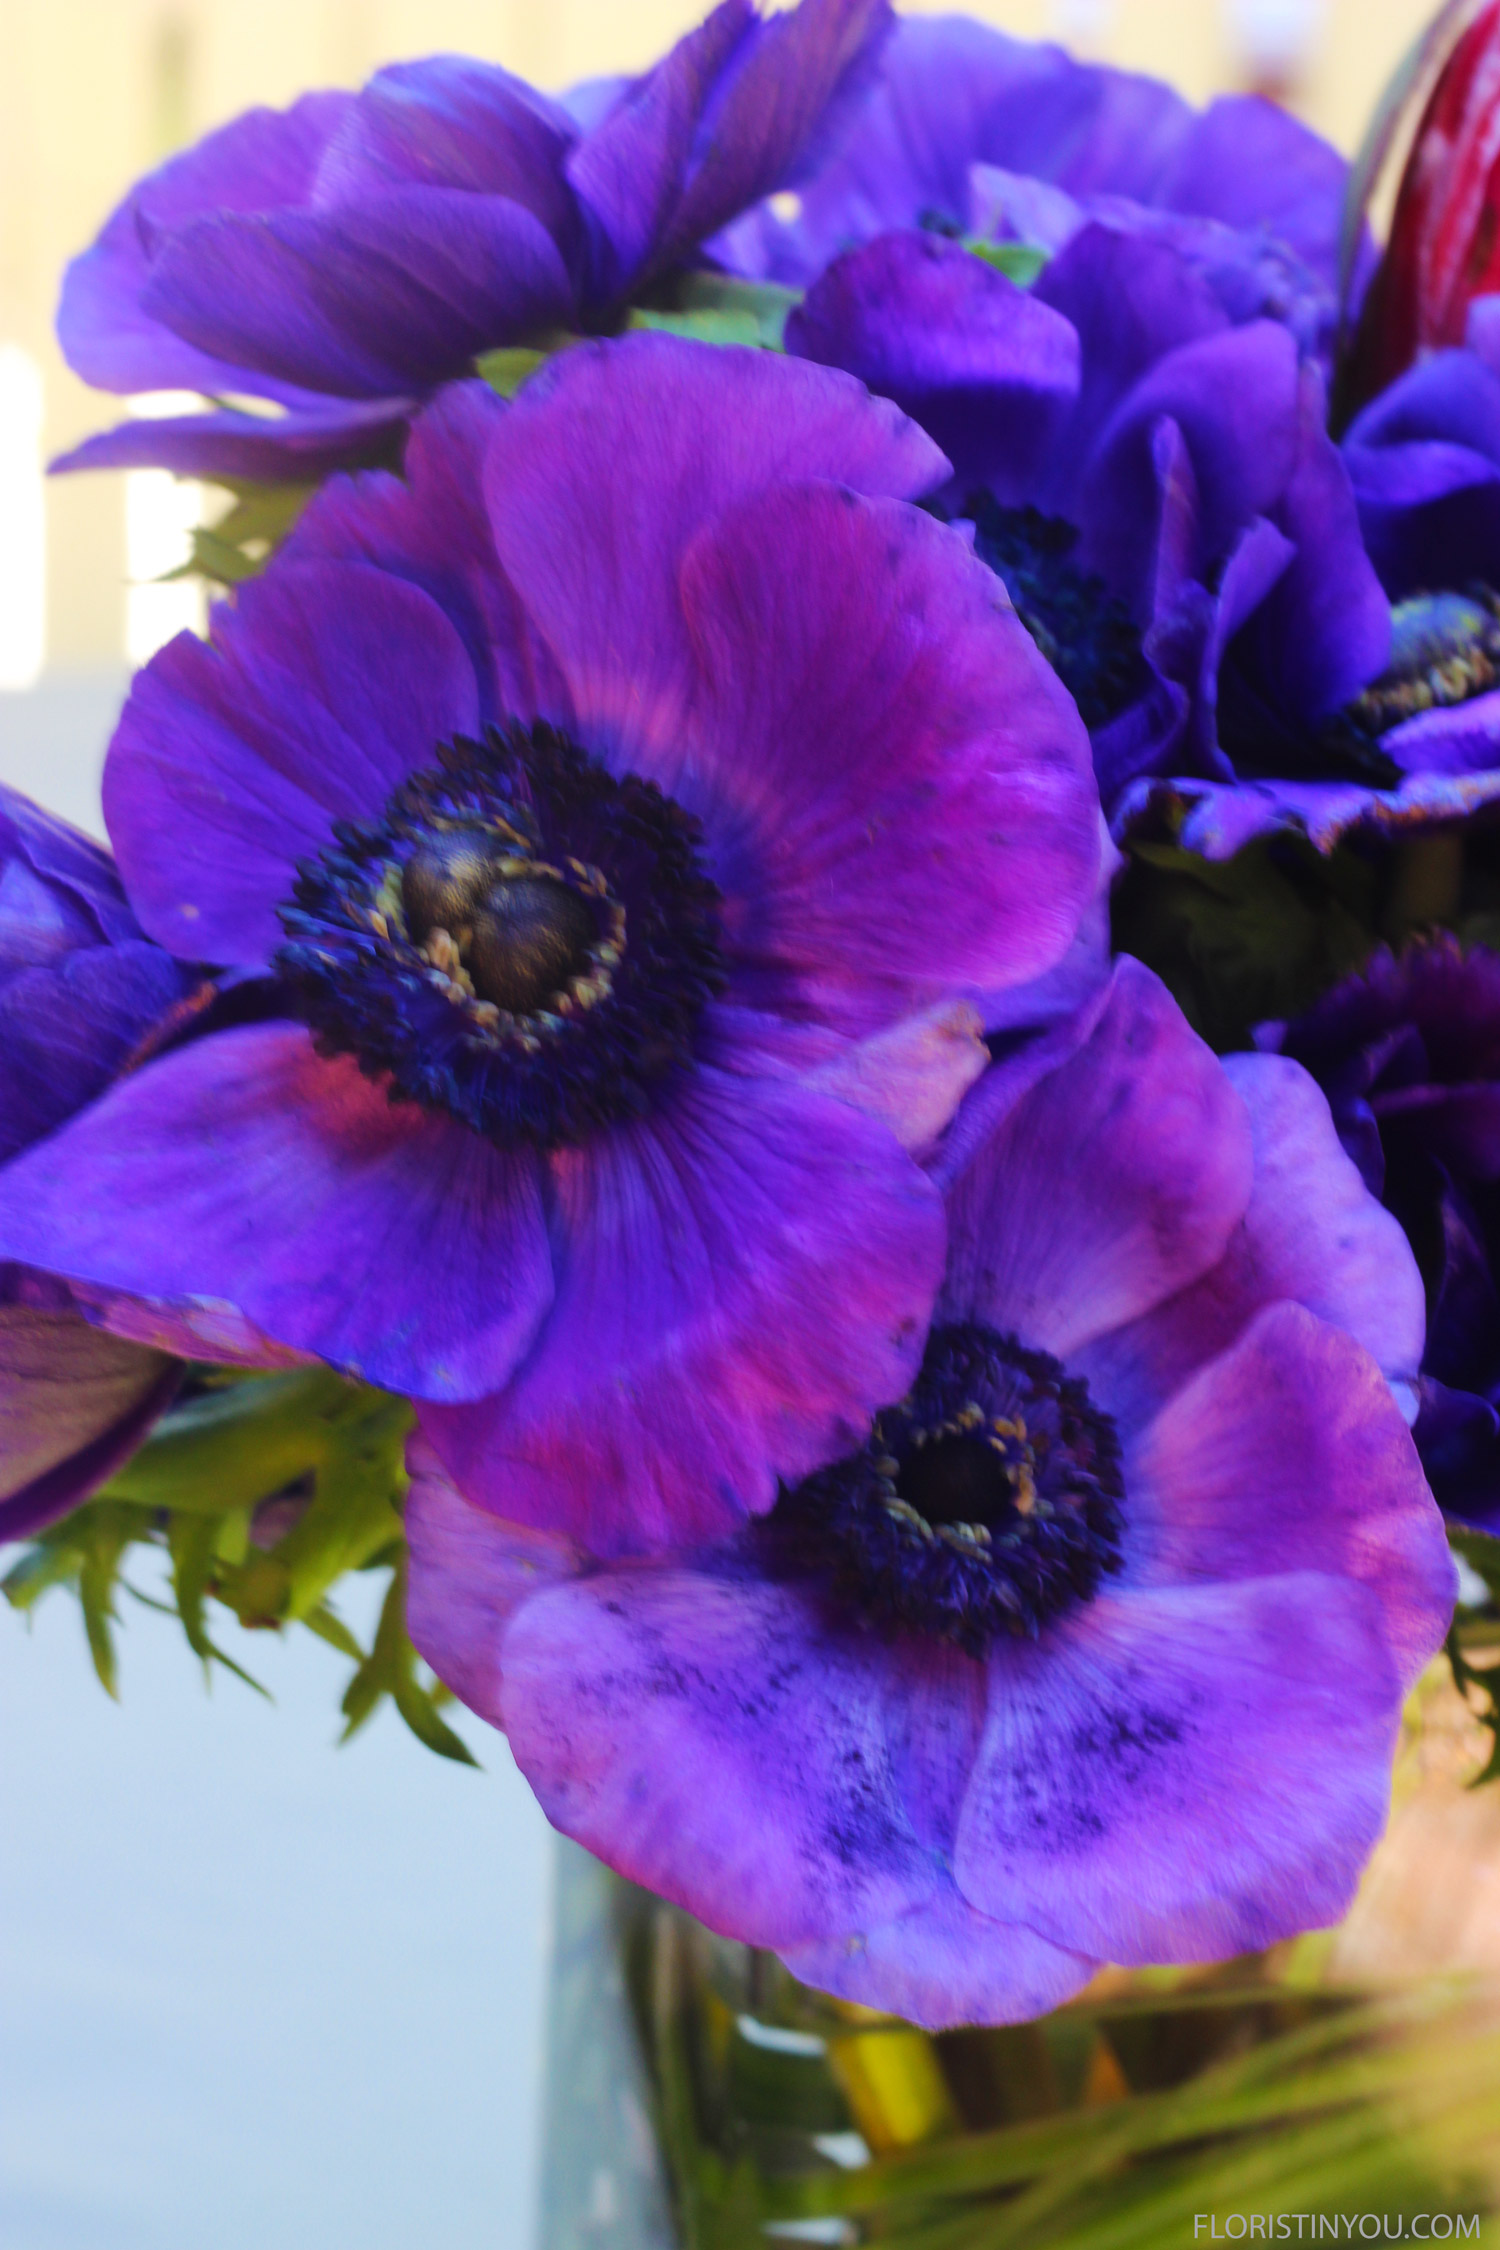 And a close up of the Anemones.